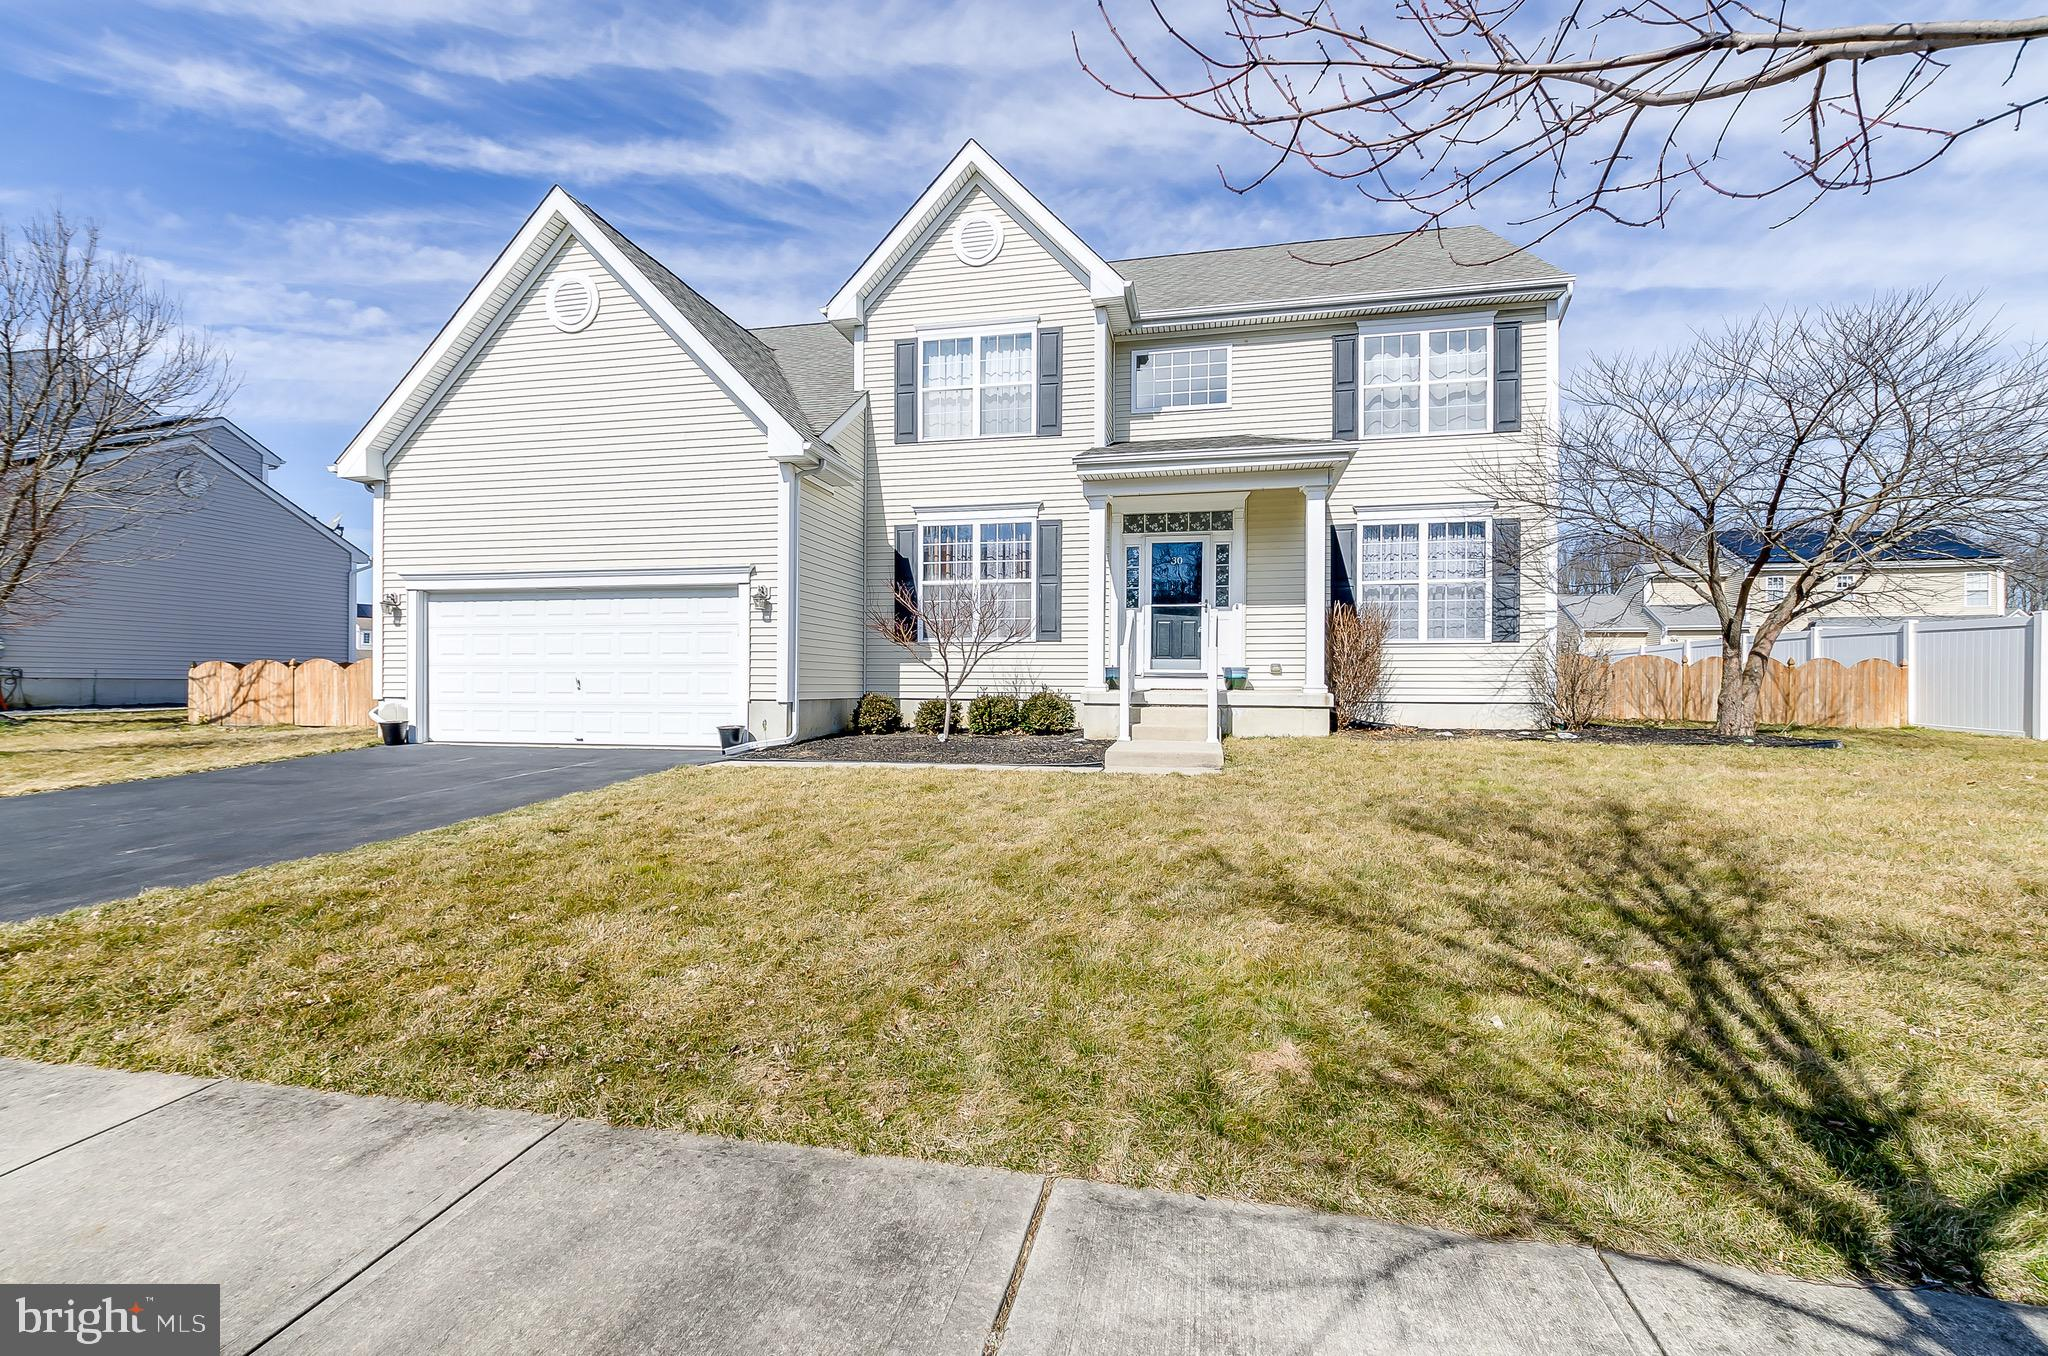 30 HOMESTEAD DRIVE, PEMBERTON, NJ 08068